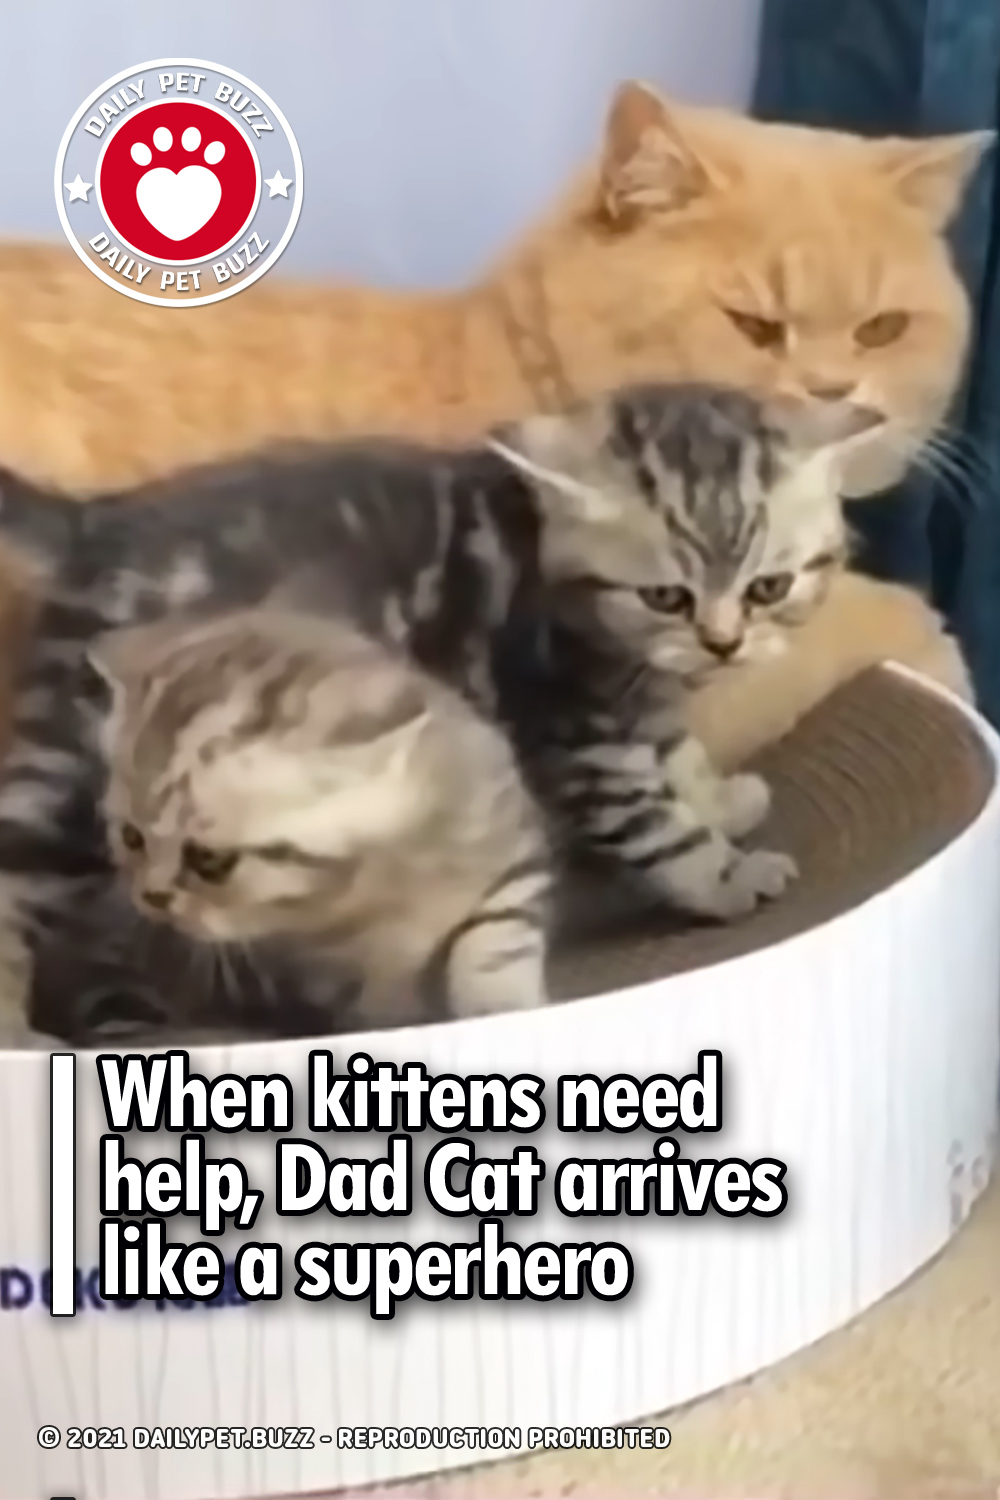 When kittens need help, Dad Cat arrives like a superhero